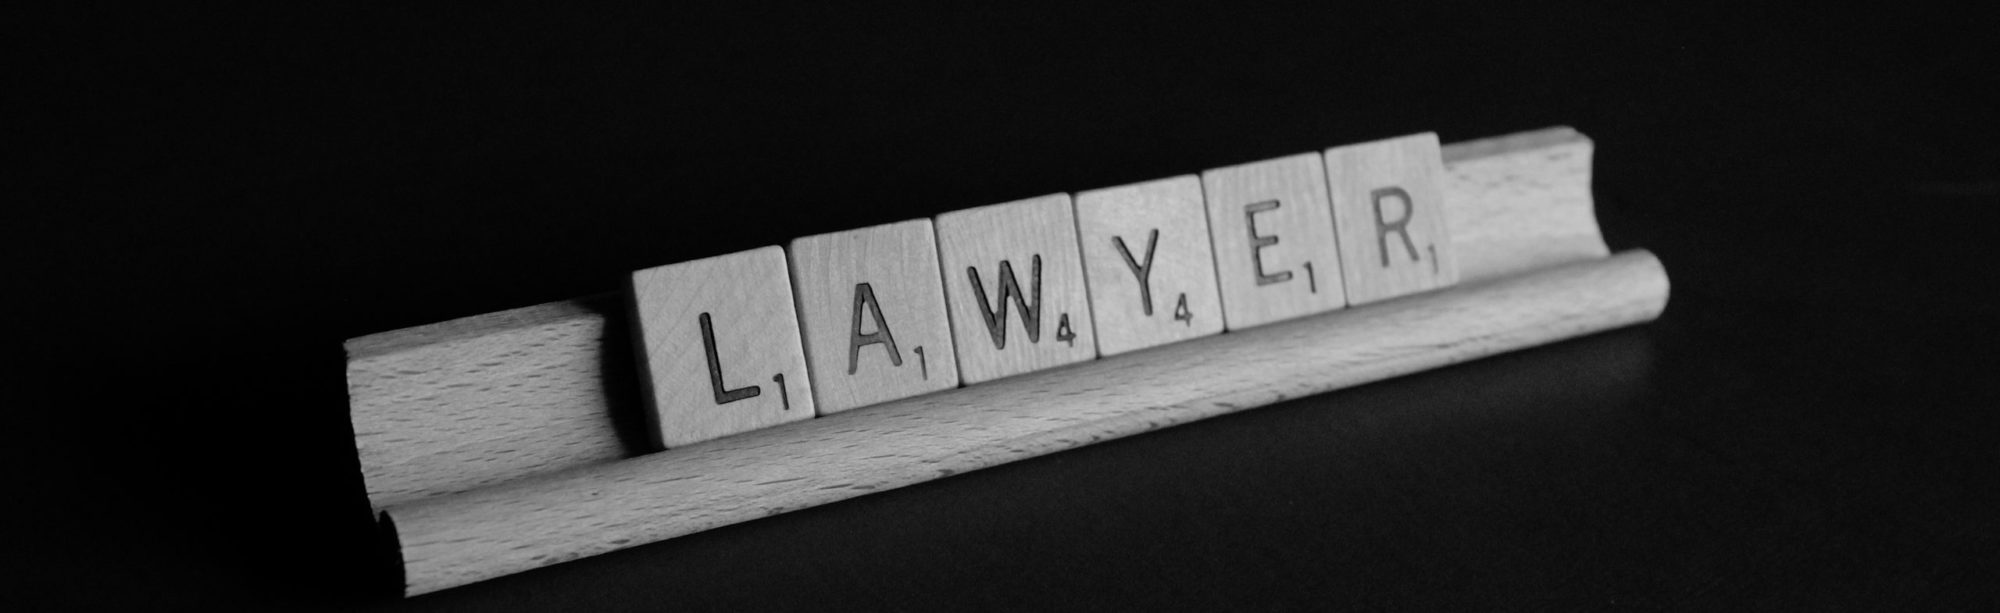 COVID-19 has changed some things about the typical corporate suing process. Here's what you need to know to keep your business protected.